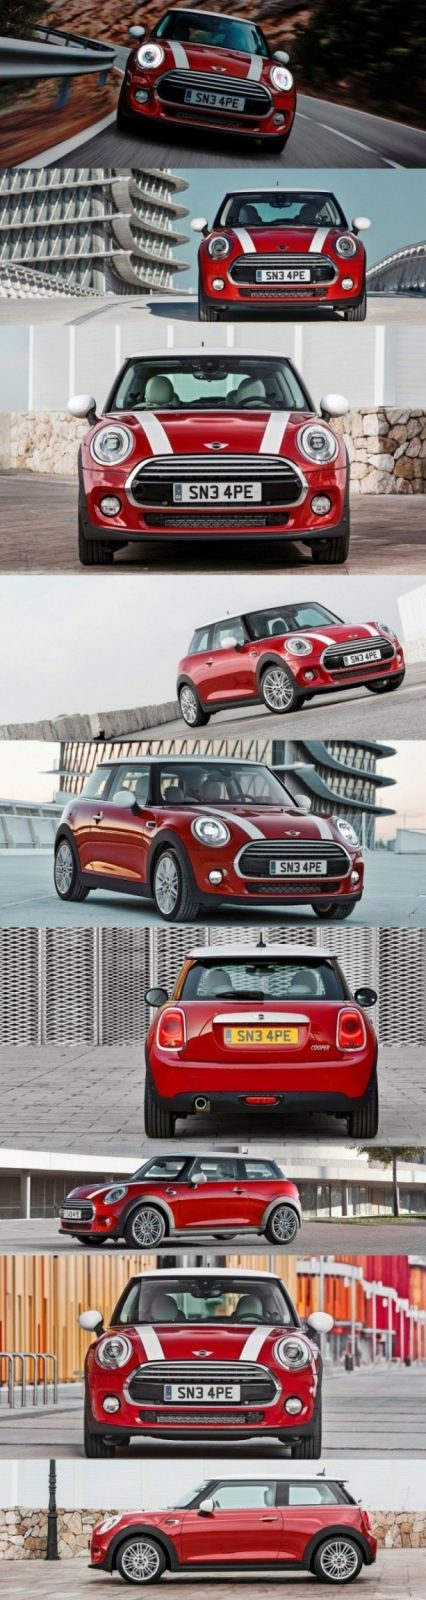 NEW-2014-MINI-Cooper-Hardtop-3edit-vert-959x3600